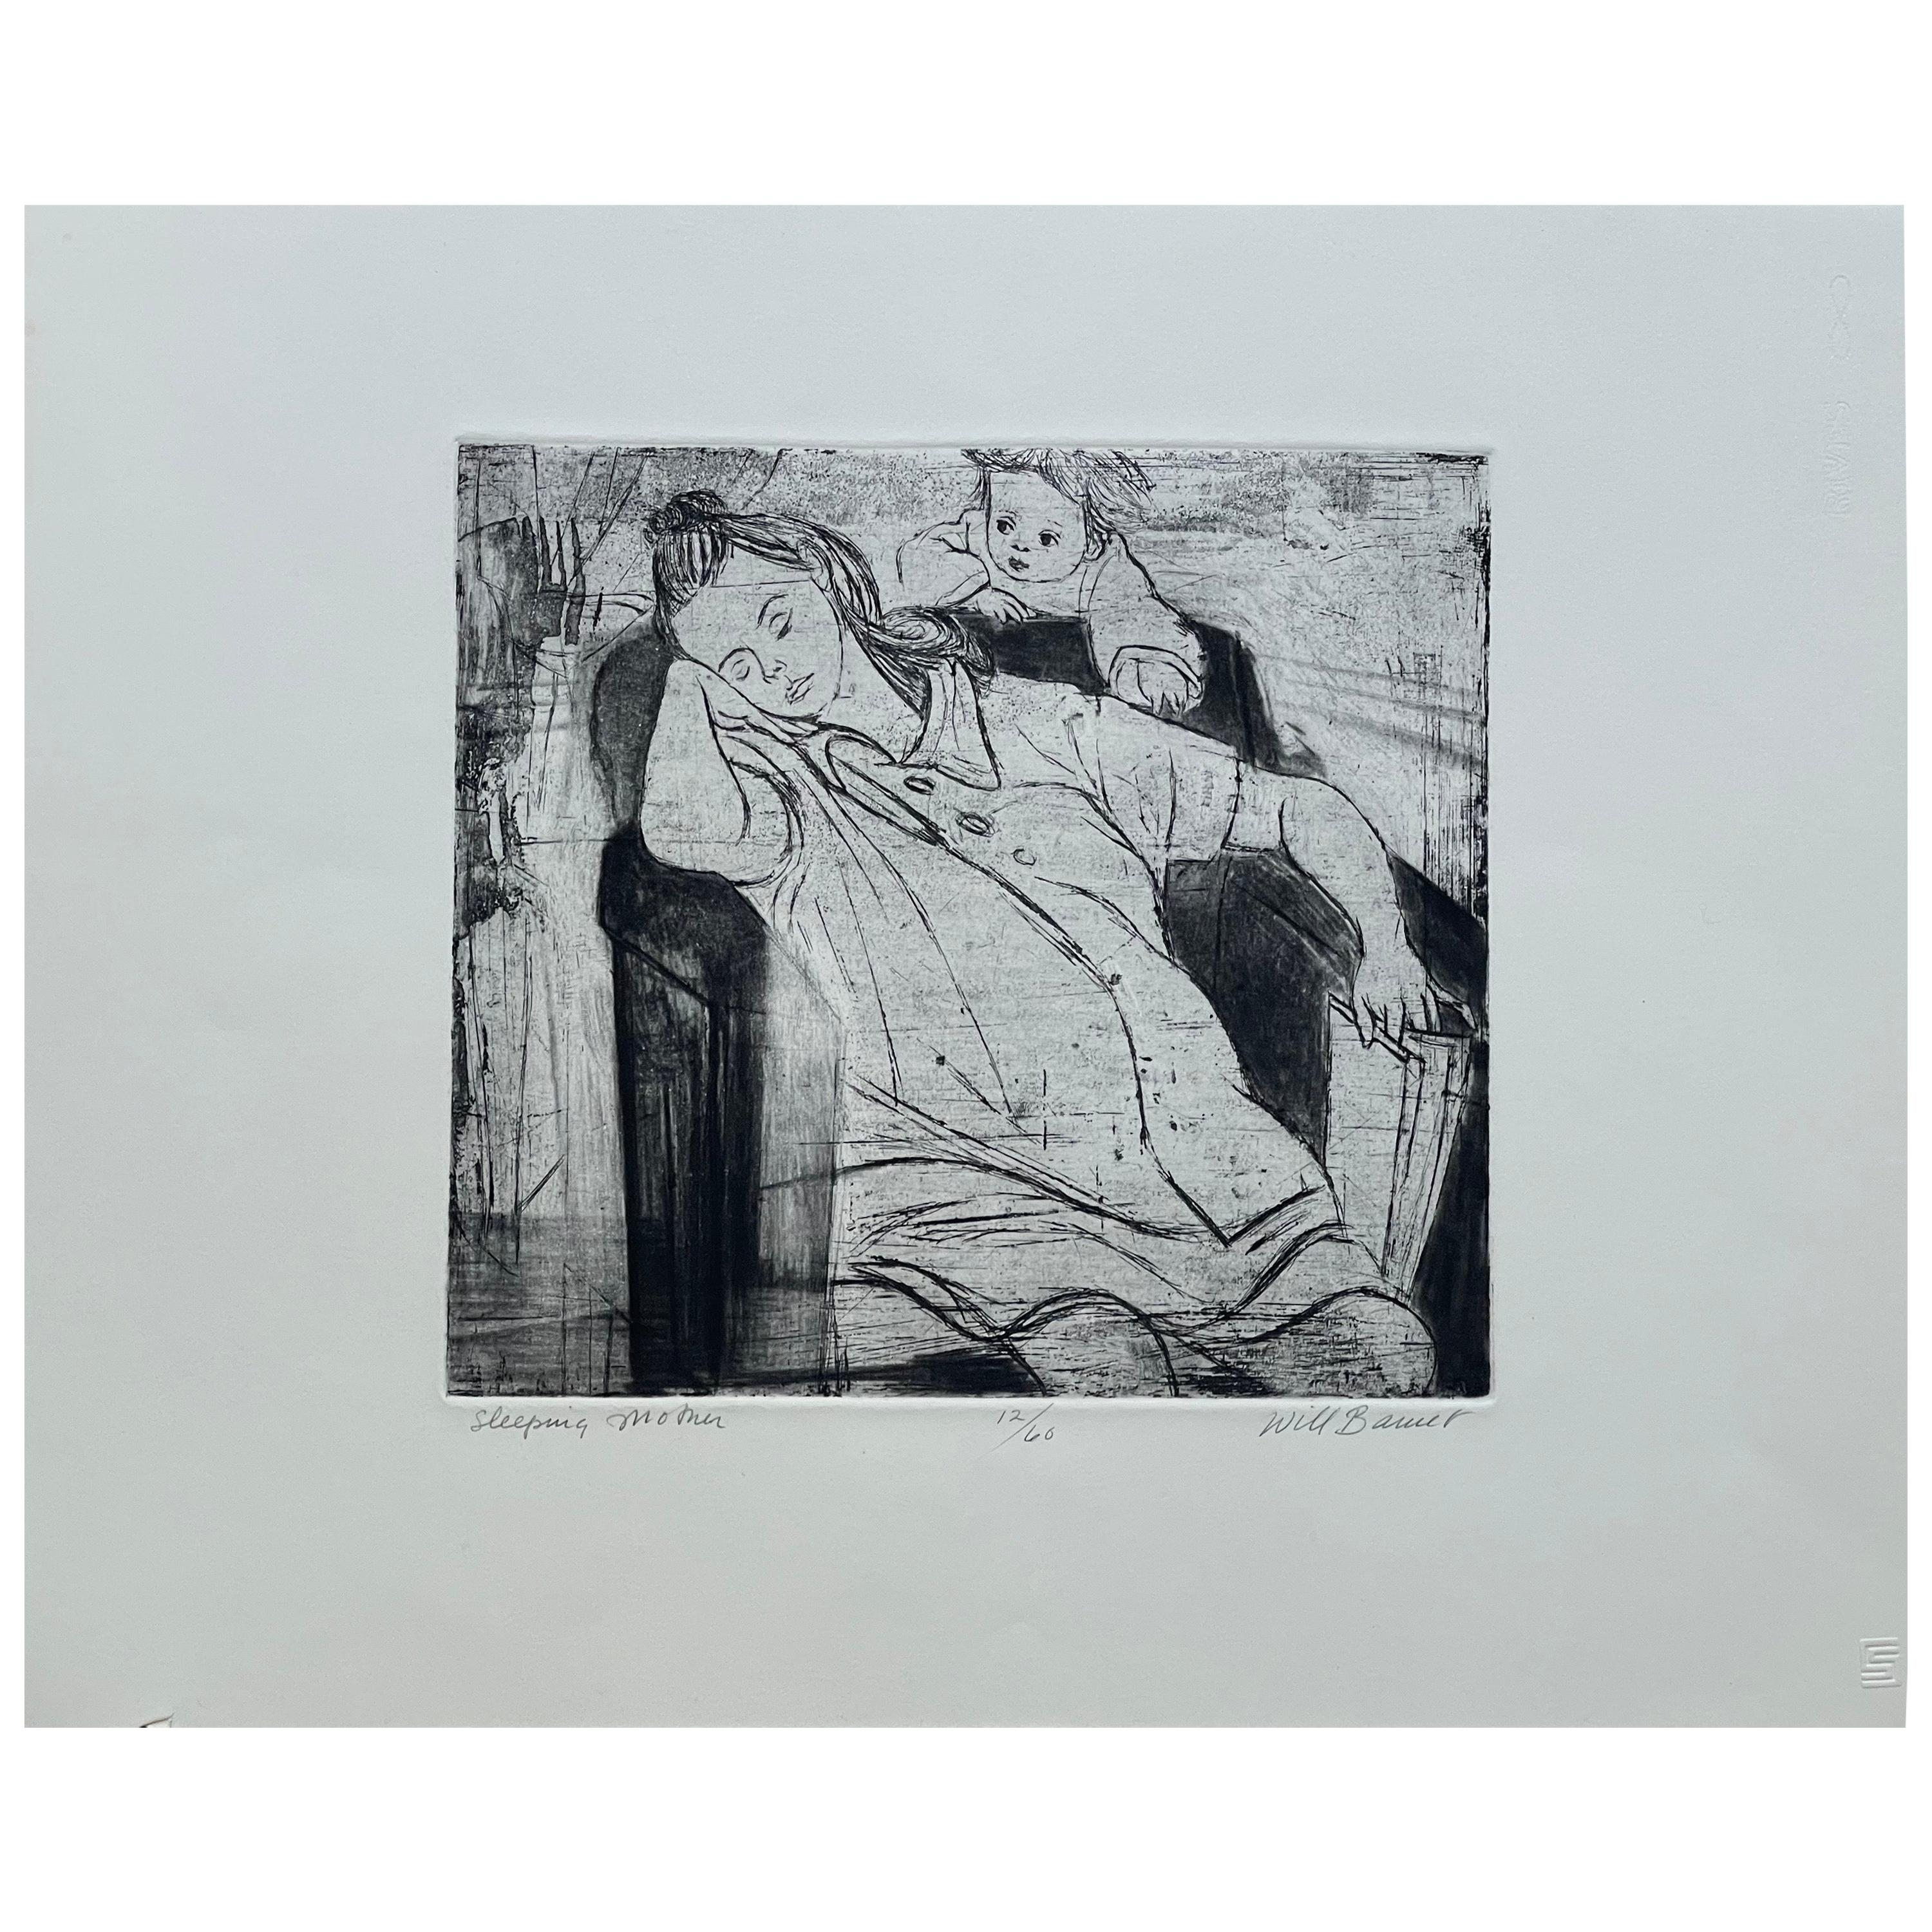 """Images of Children Etching Entitled """"Sleeping Mother"""" by Will Barnet"""